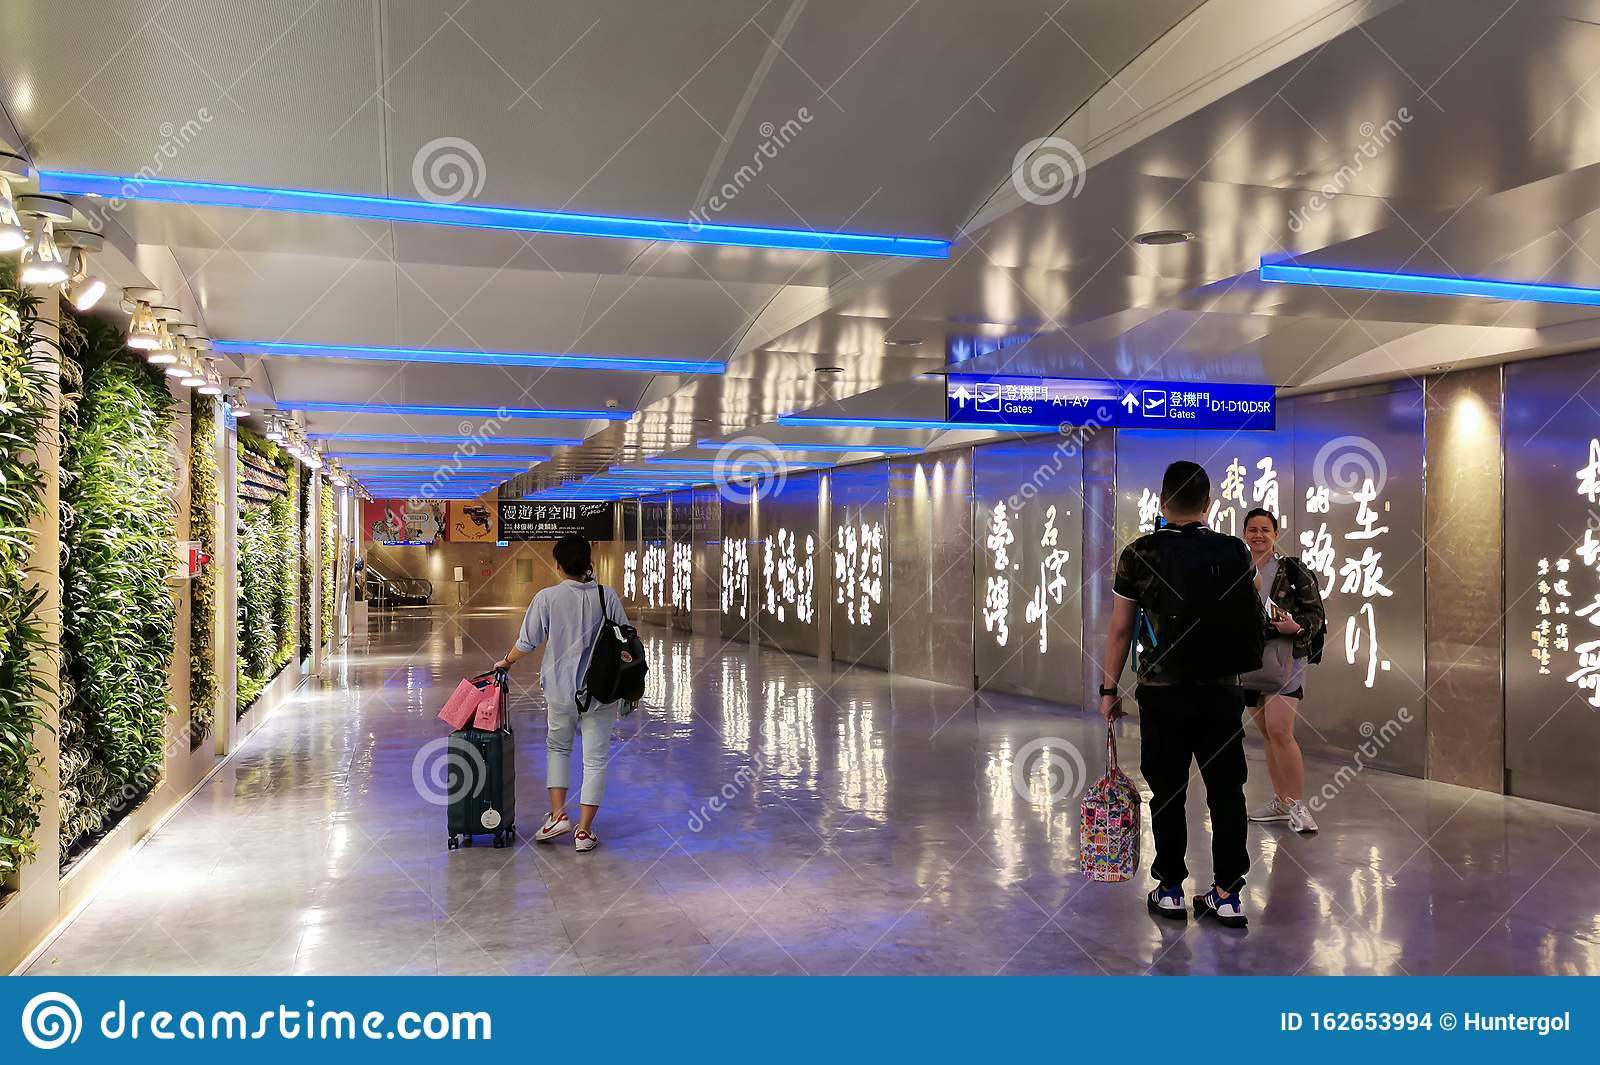 beautiful-walking-path-to-departure-gates-terminal-taoyuan-aiport-chinese-writing-one-wall-green-grass-other-side-162653994.jpg